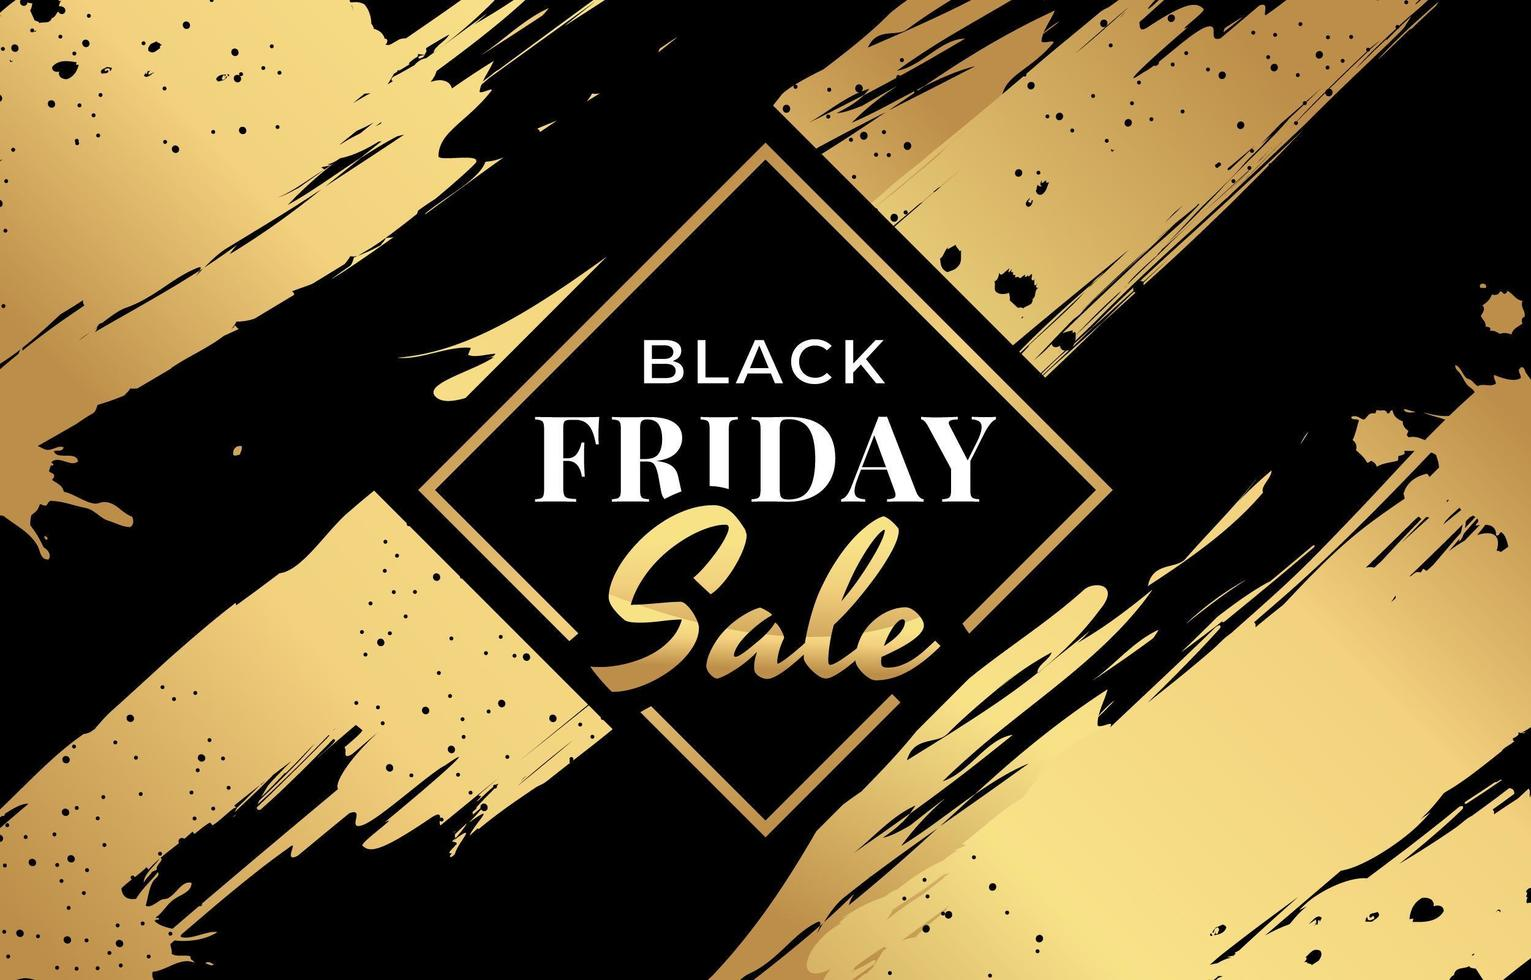 Black and Gold Aesthetic for Black Friday Sale vector